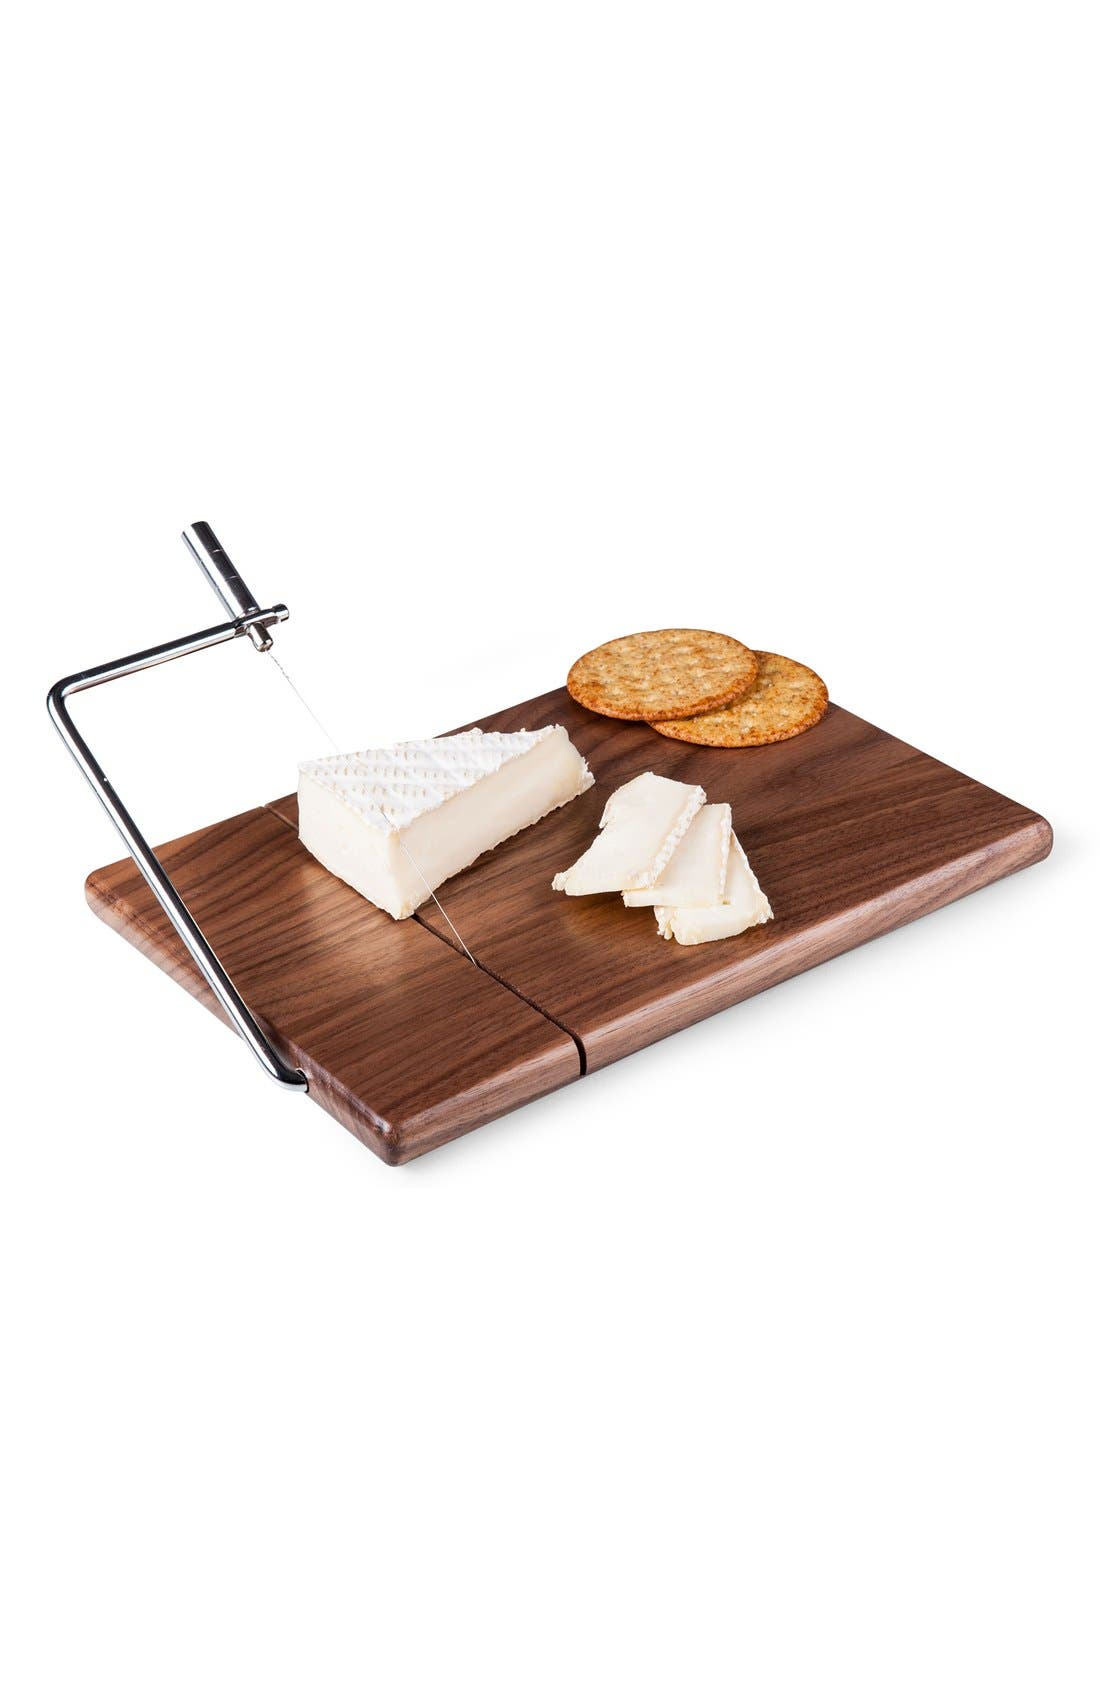 Alternate Image 1 Selected - Picnic Time 'Meridian' Black Walnut Cutting Board with Slicer